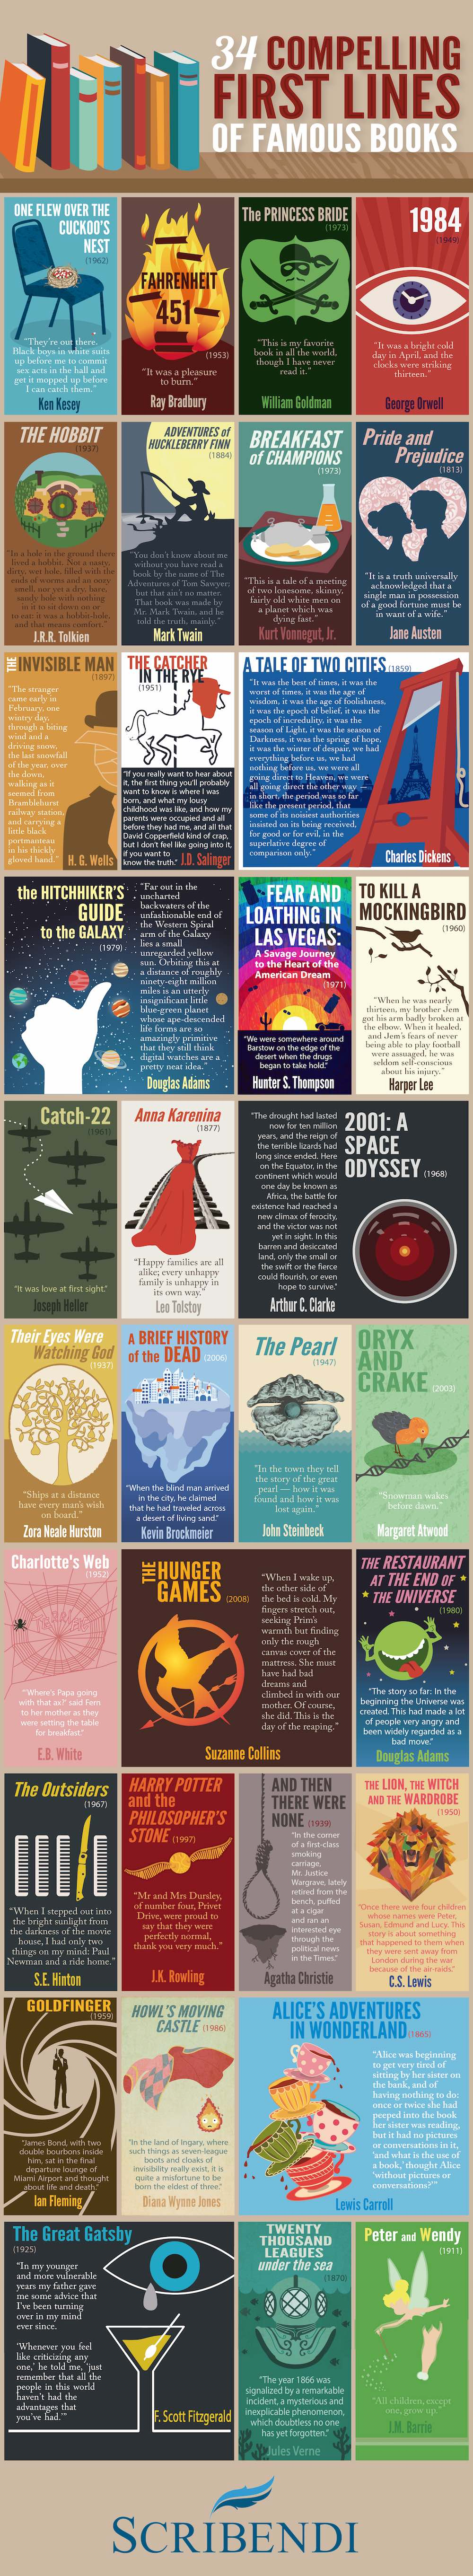 Compelling First Lines of Famous Books